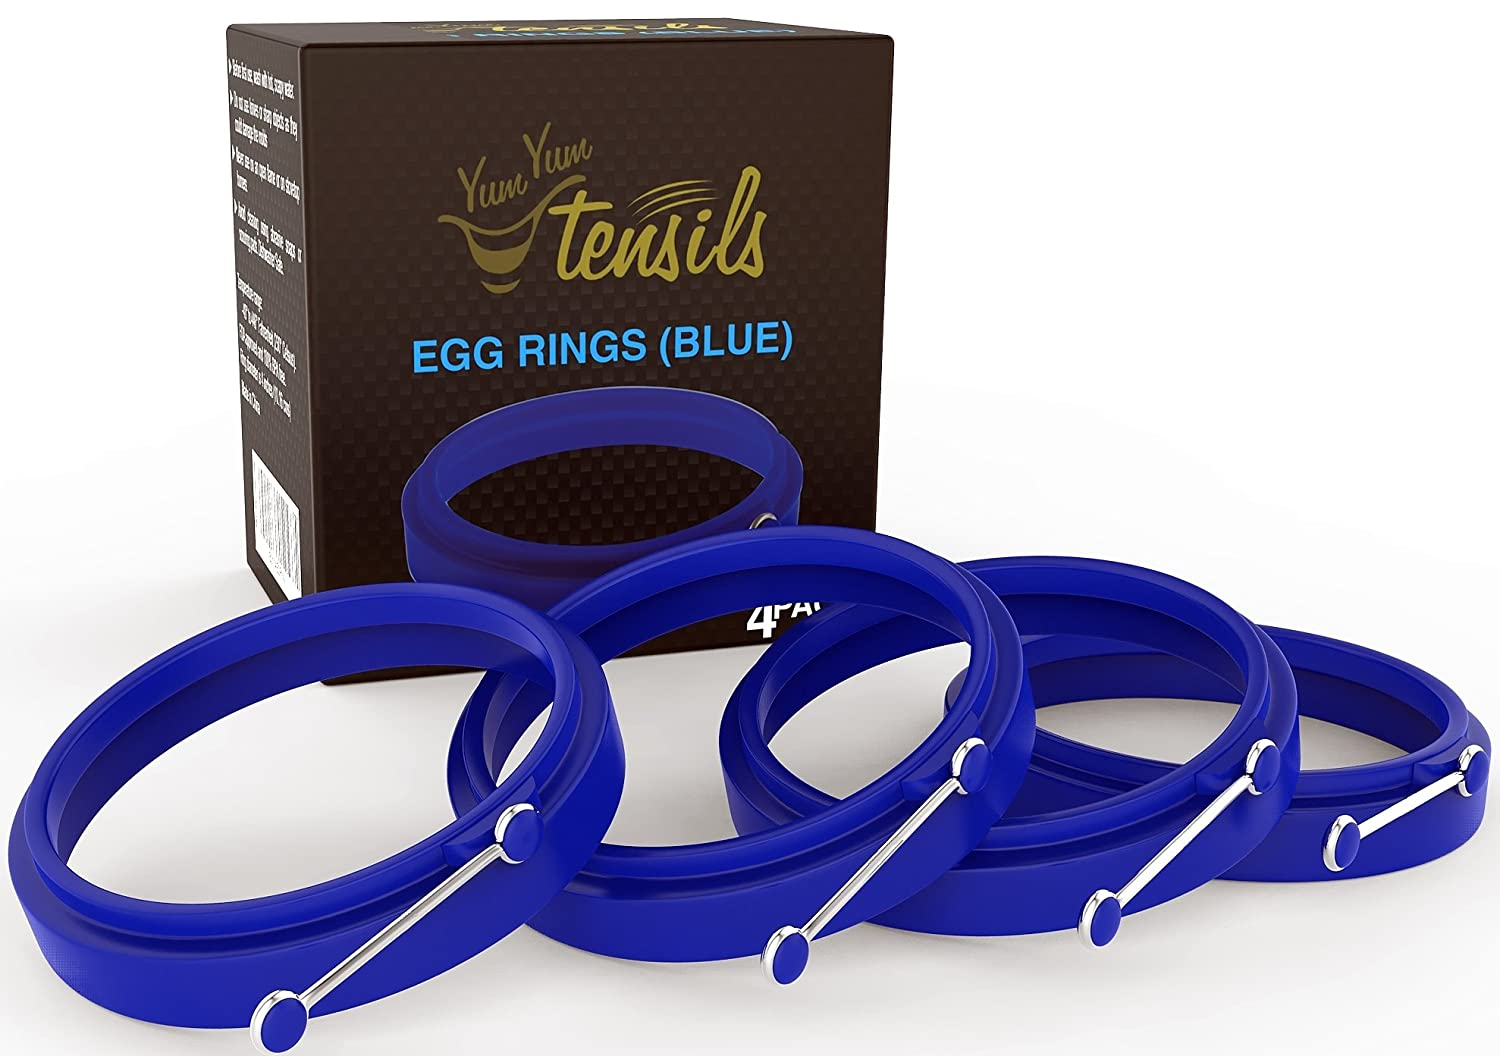 New Egg Ring 4-Pk, Silicone Egg Rings Non Stick, Perfect Fried Egg Mold or Pancake Rings, Egg Cooking Rings for Stunning Breakfasts Every Time - no More Eggy Pan Mess. Blue 4-pk by YumYum Utensils